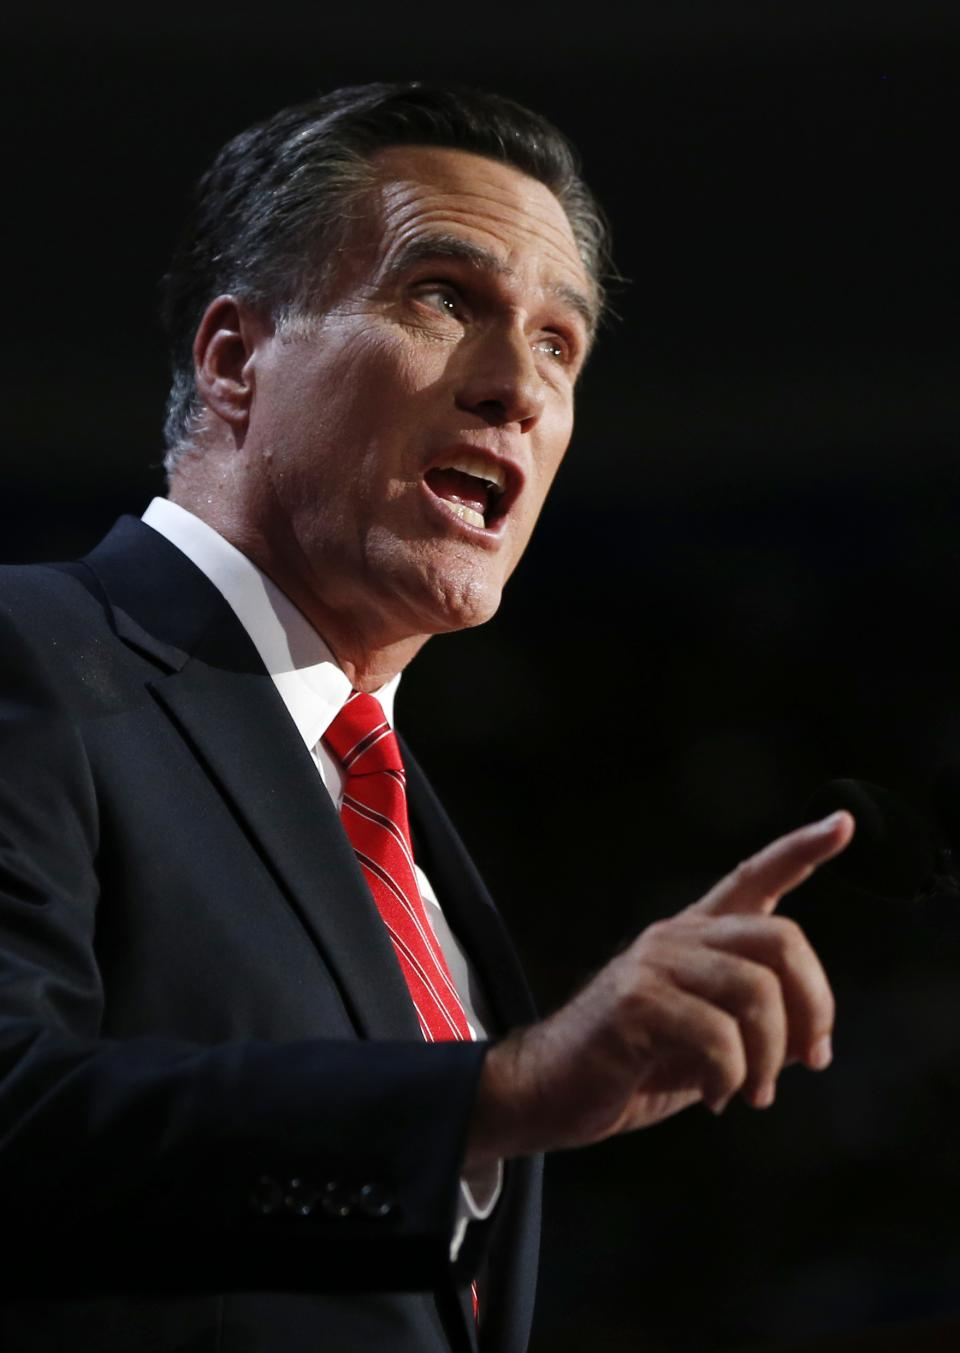 Republican presidential nominee Mitt Romney addresses delegates before speaking at the Republican National Convention in Tampa, Fla., on Thursday, Aug. 30, 2012. (AP Photo/Jae C. Hong)